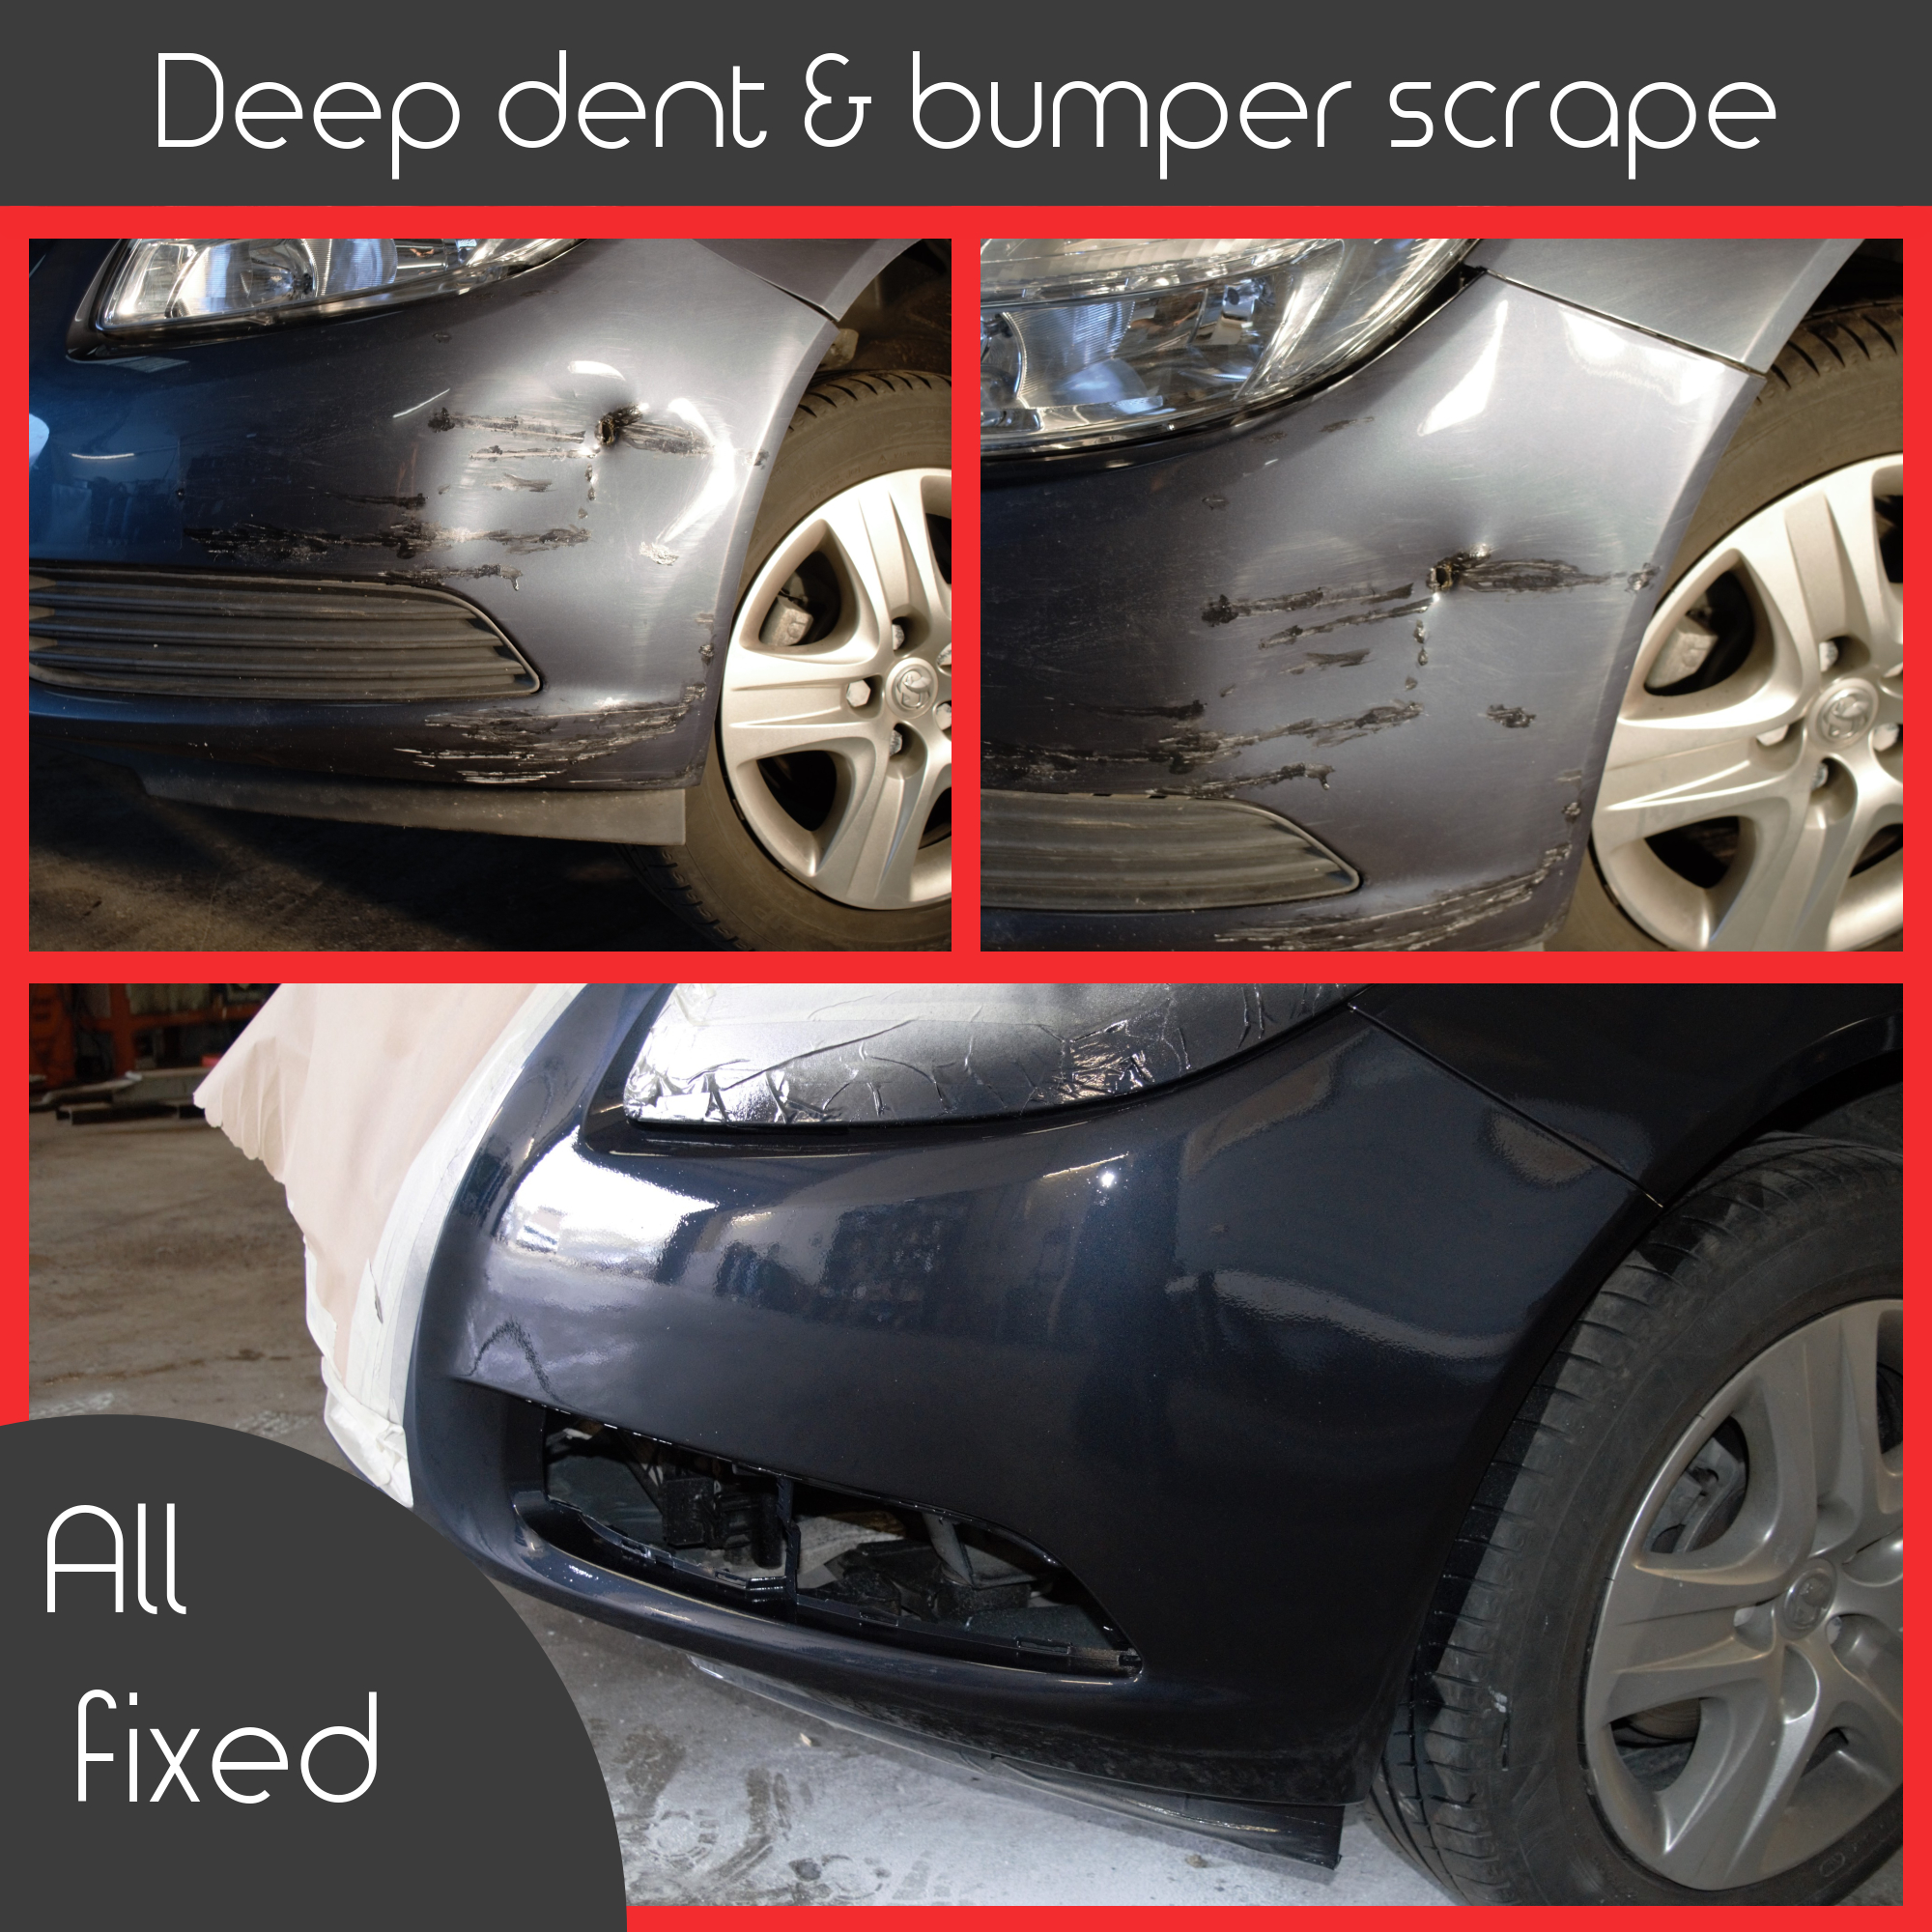 Bumper dent and scrape